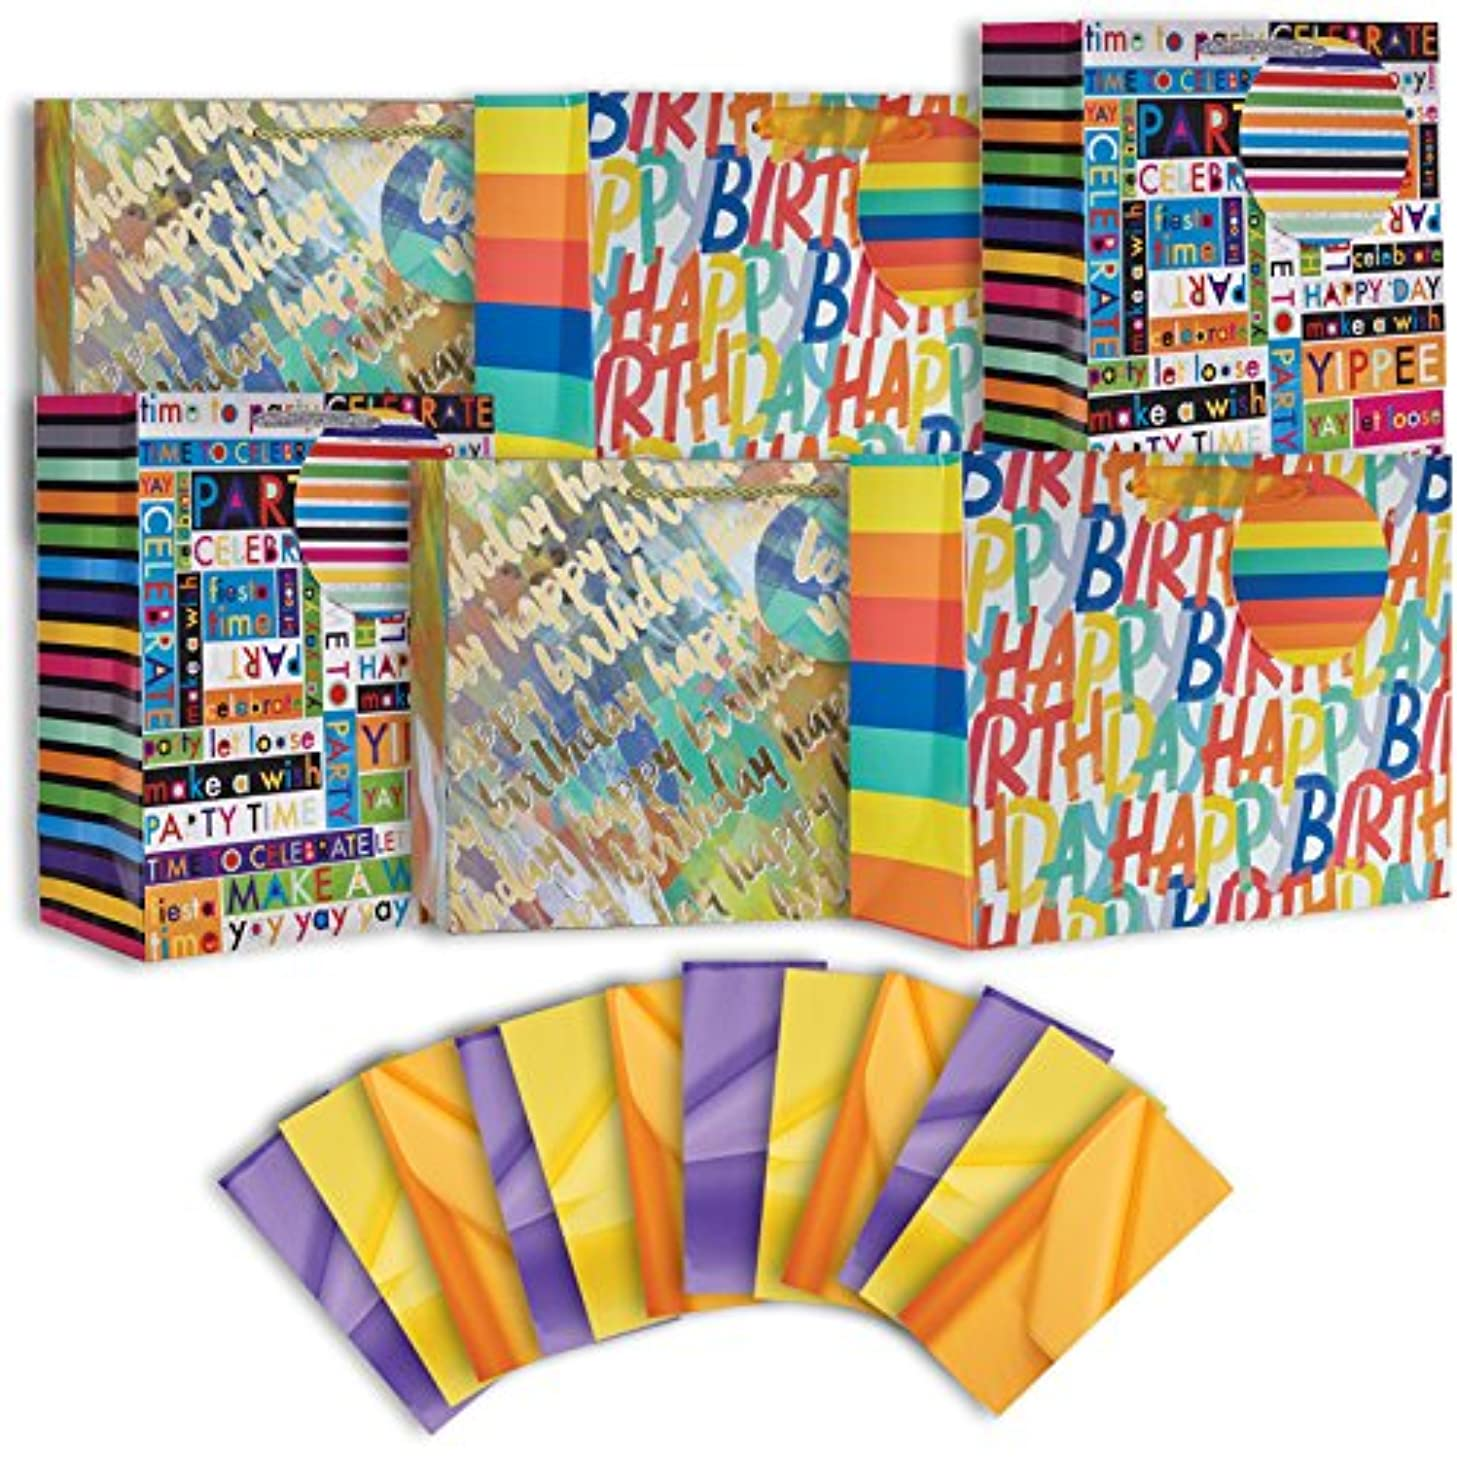 Jillson Roberts 6-Count Large Birthday Gift Bags in Assorted Designs with Tissue, Make a Wish